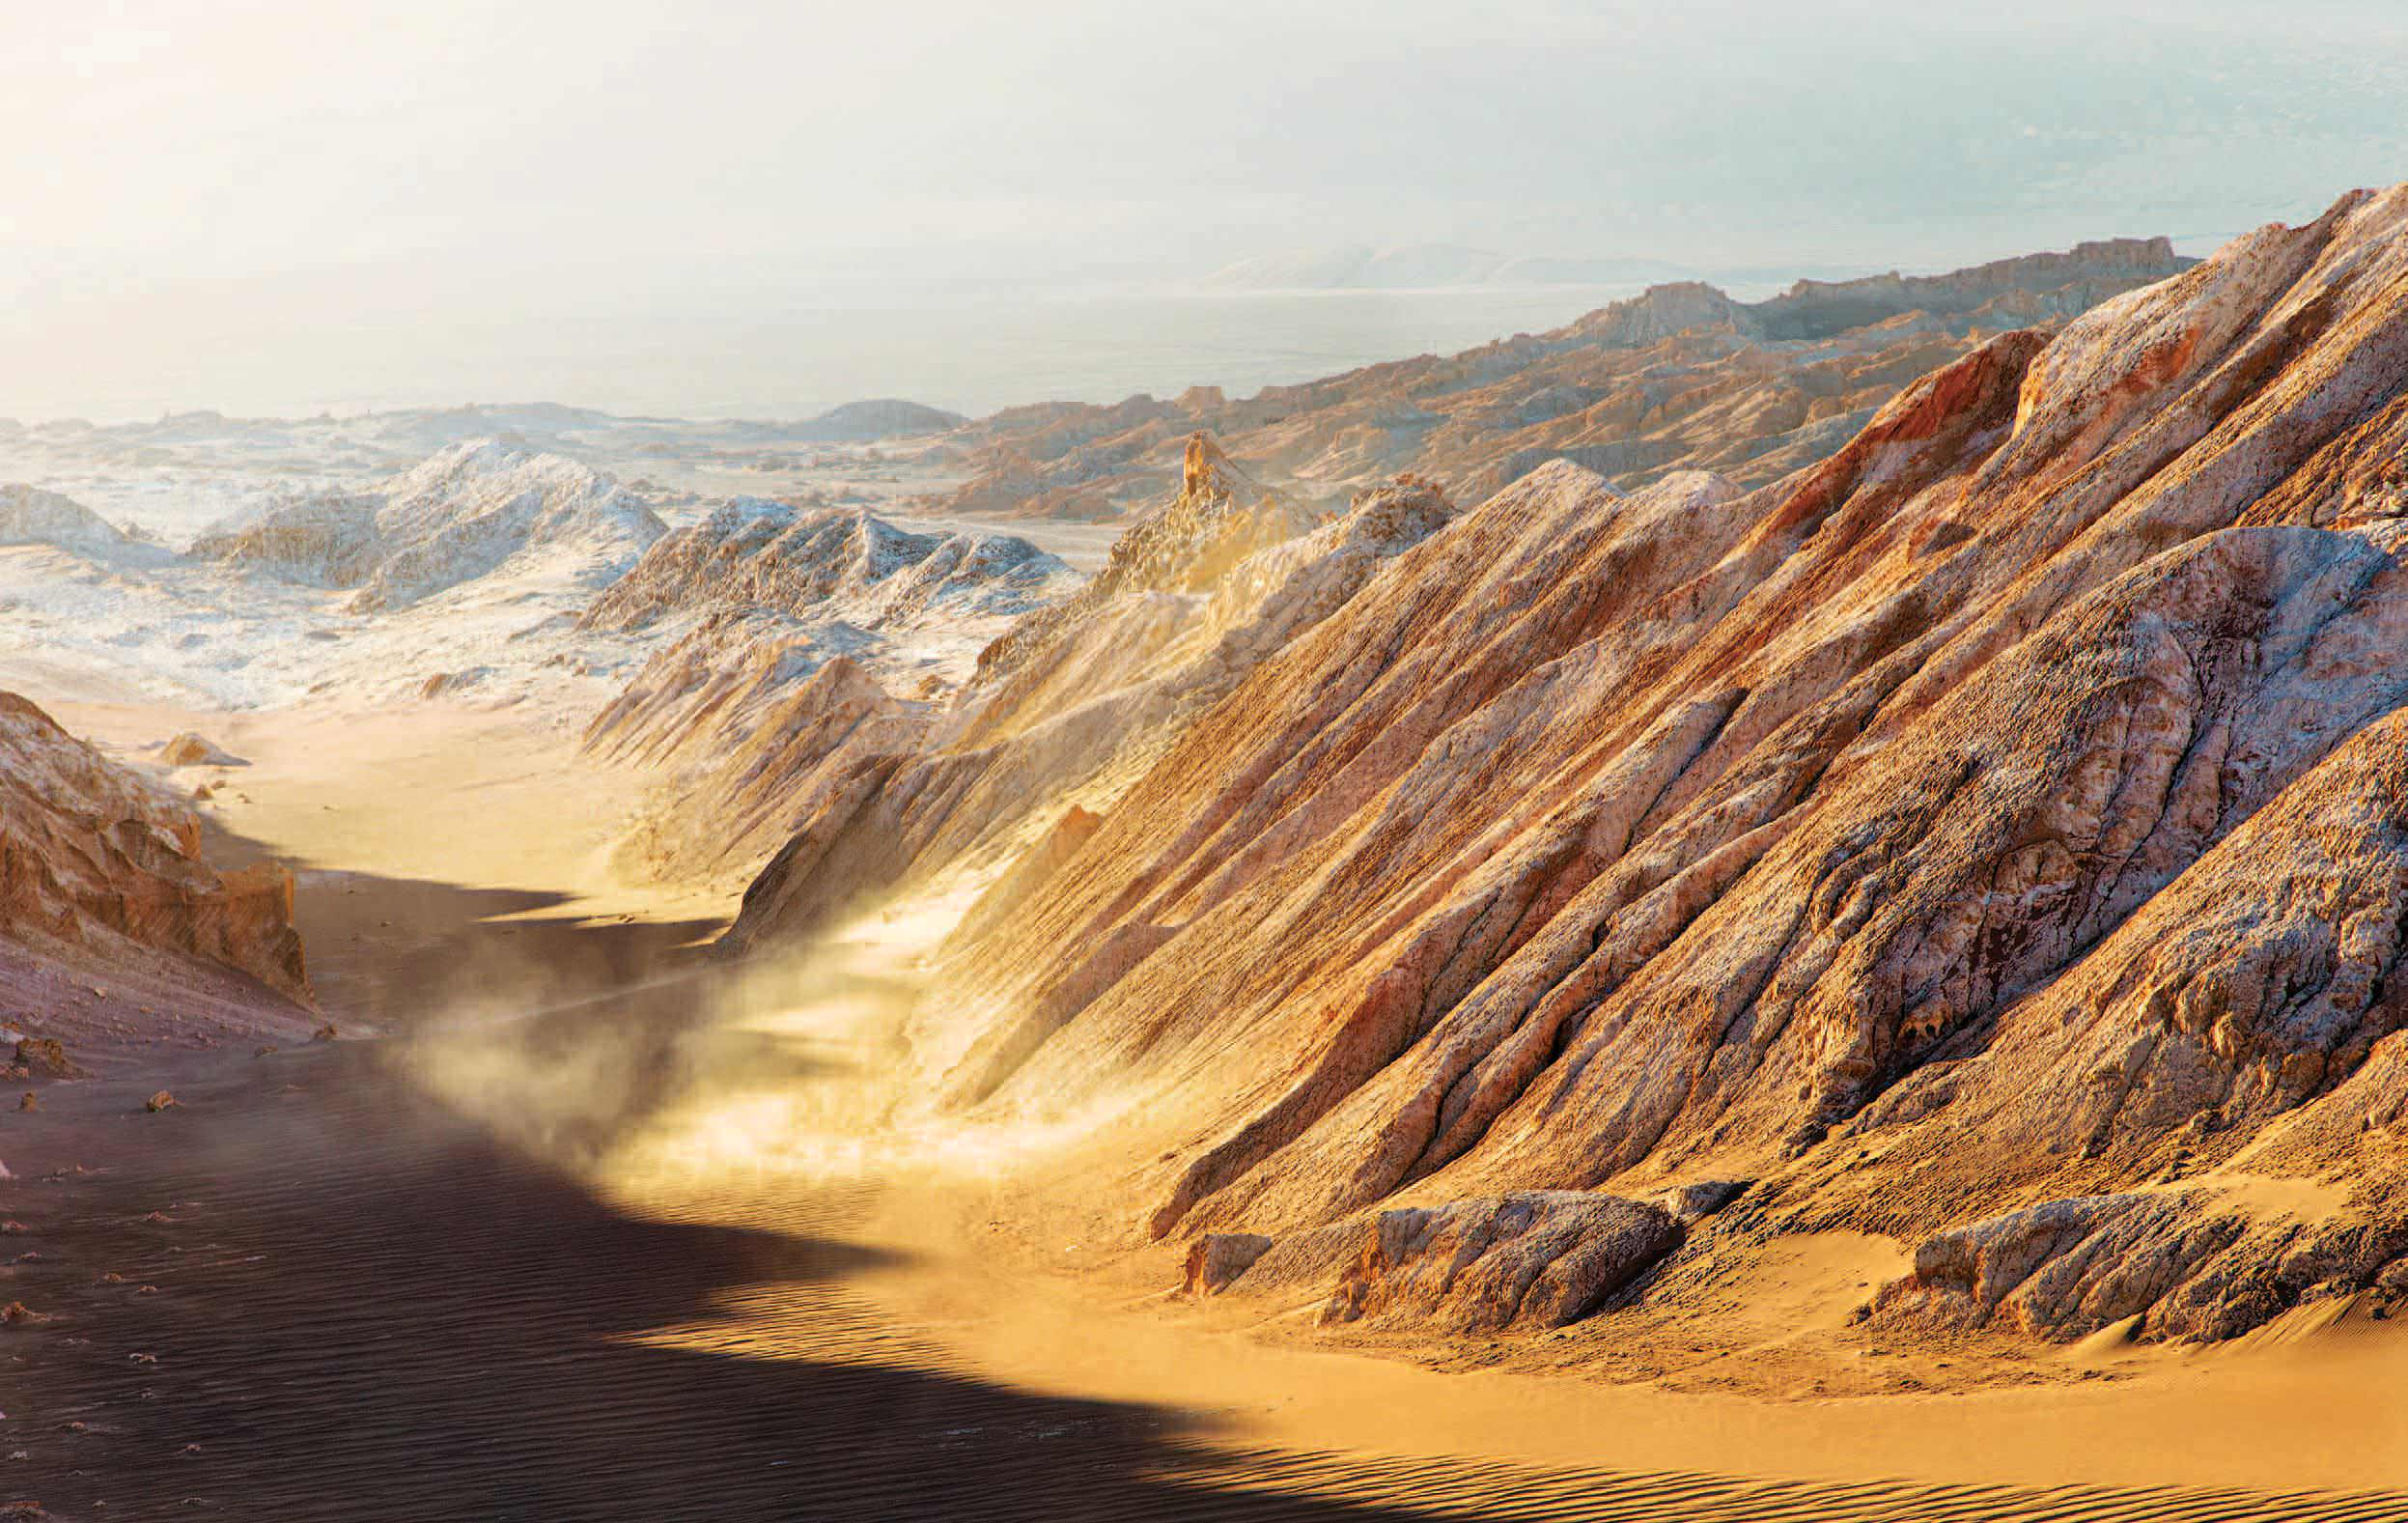 The Most Barren Place On Earth- The Atacama, Chile